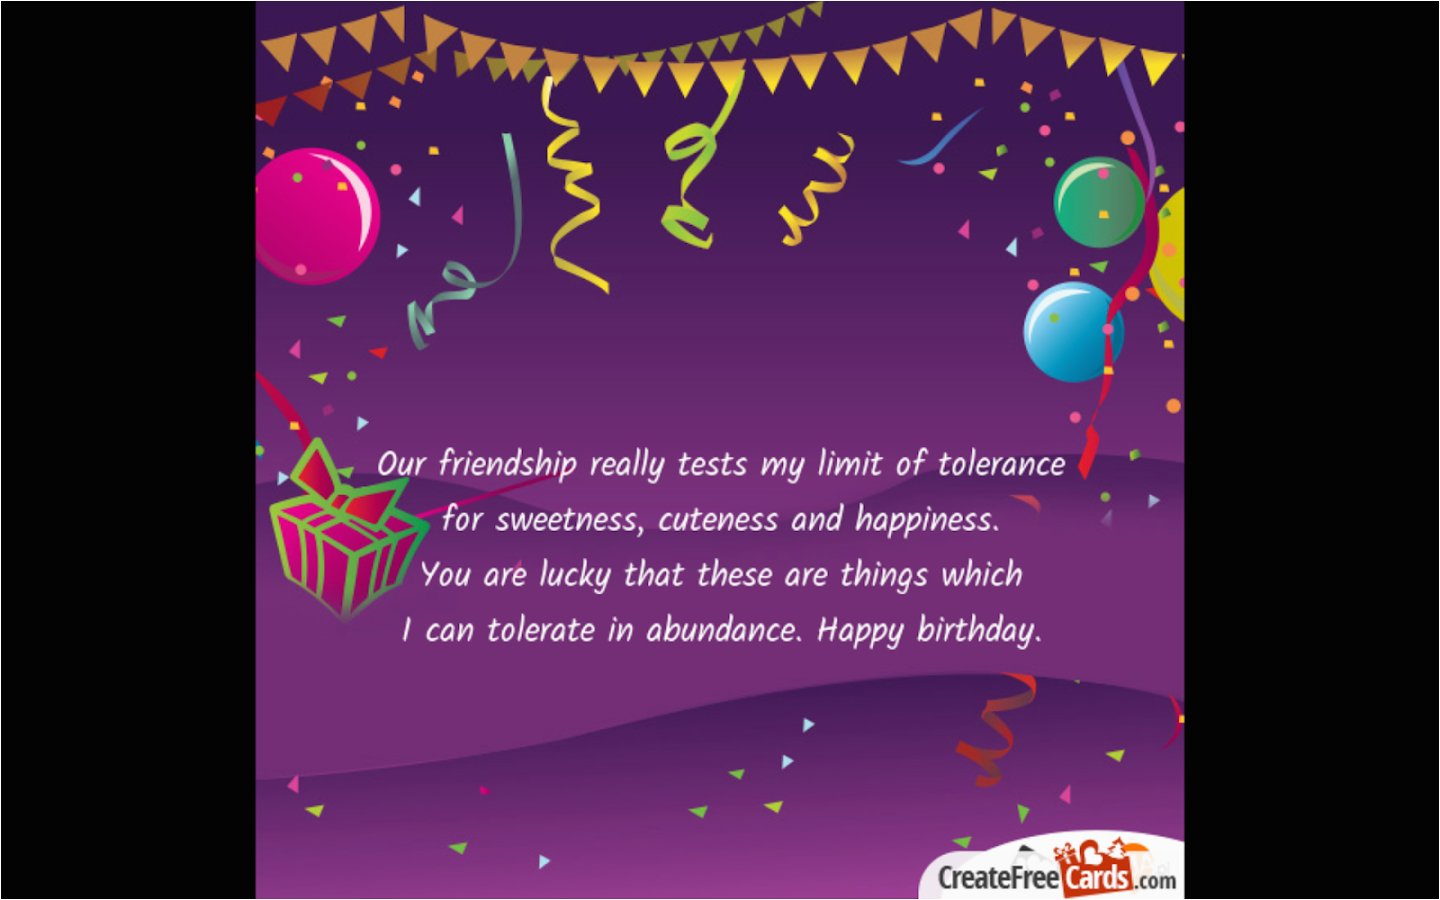 Create Birthday Card With Photo Online Free Wishes Android Apps On Google Play